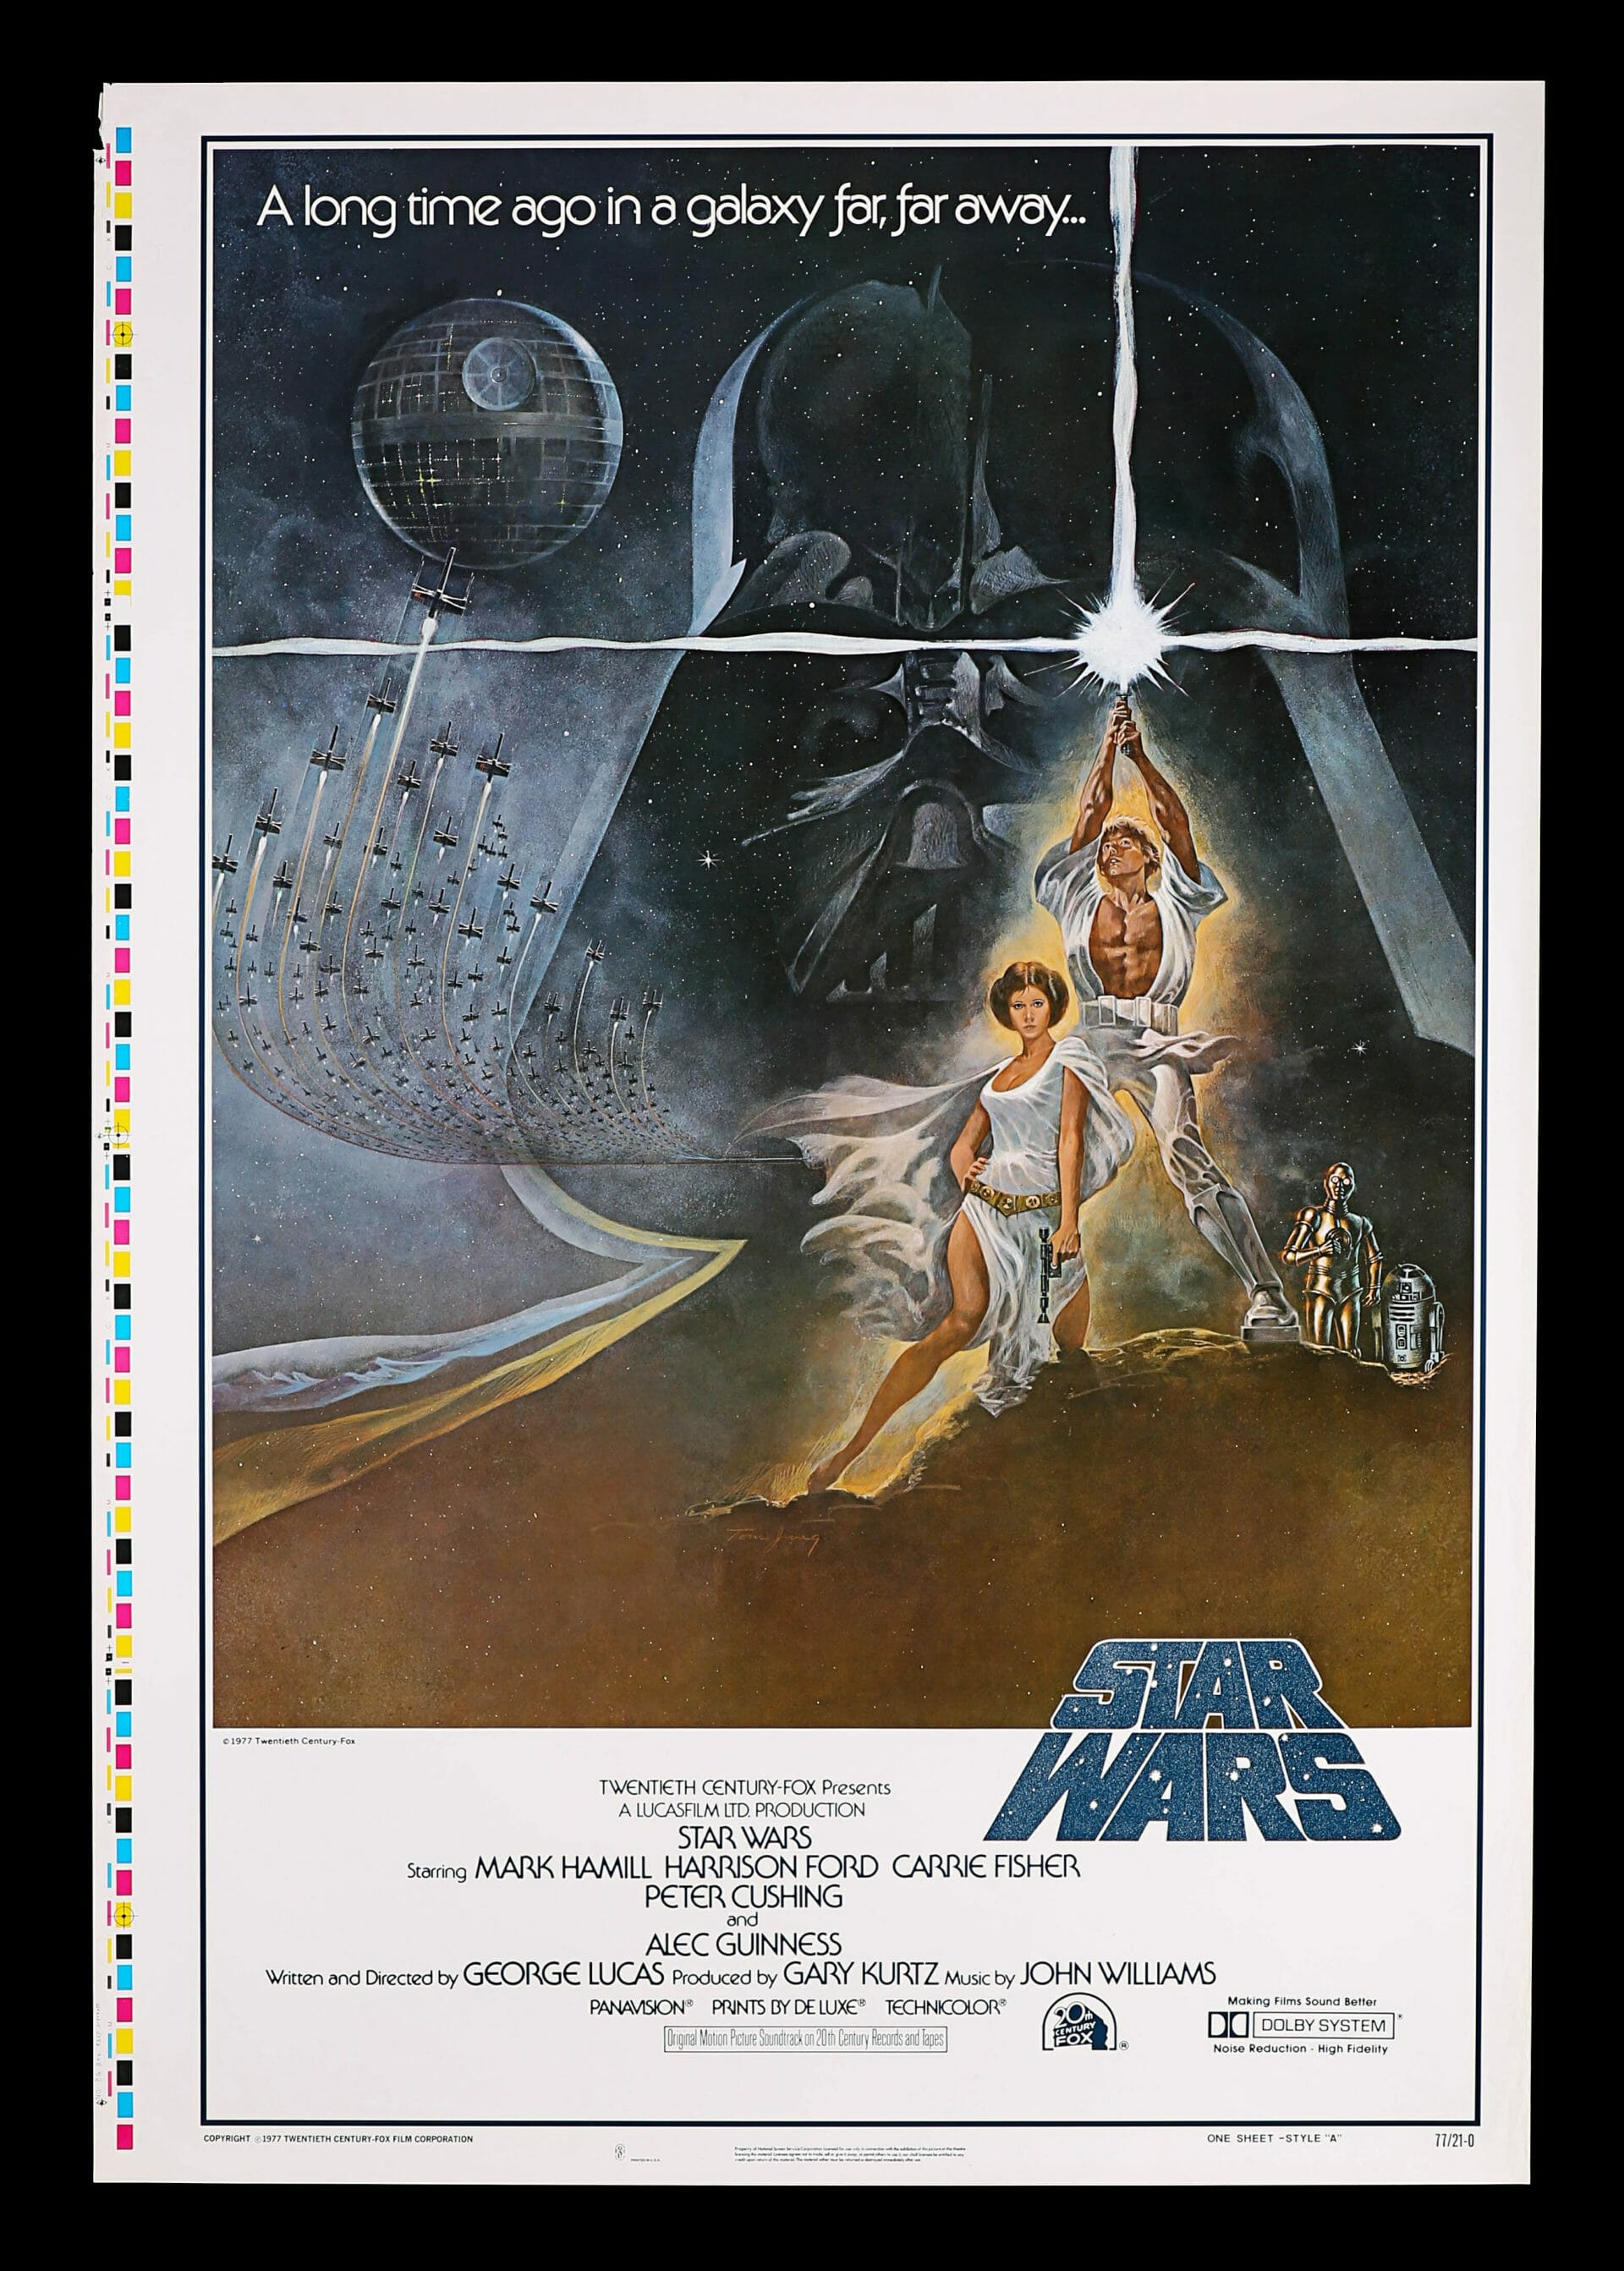 Star Wars one sheet